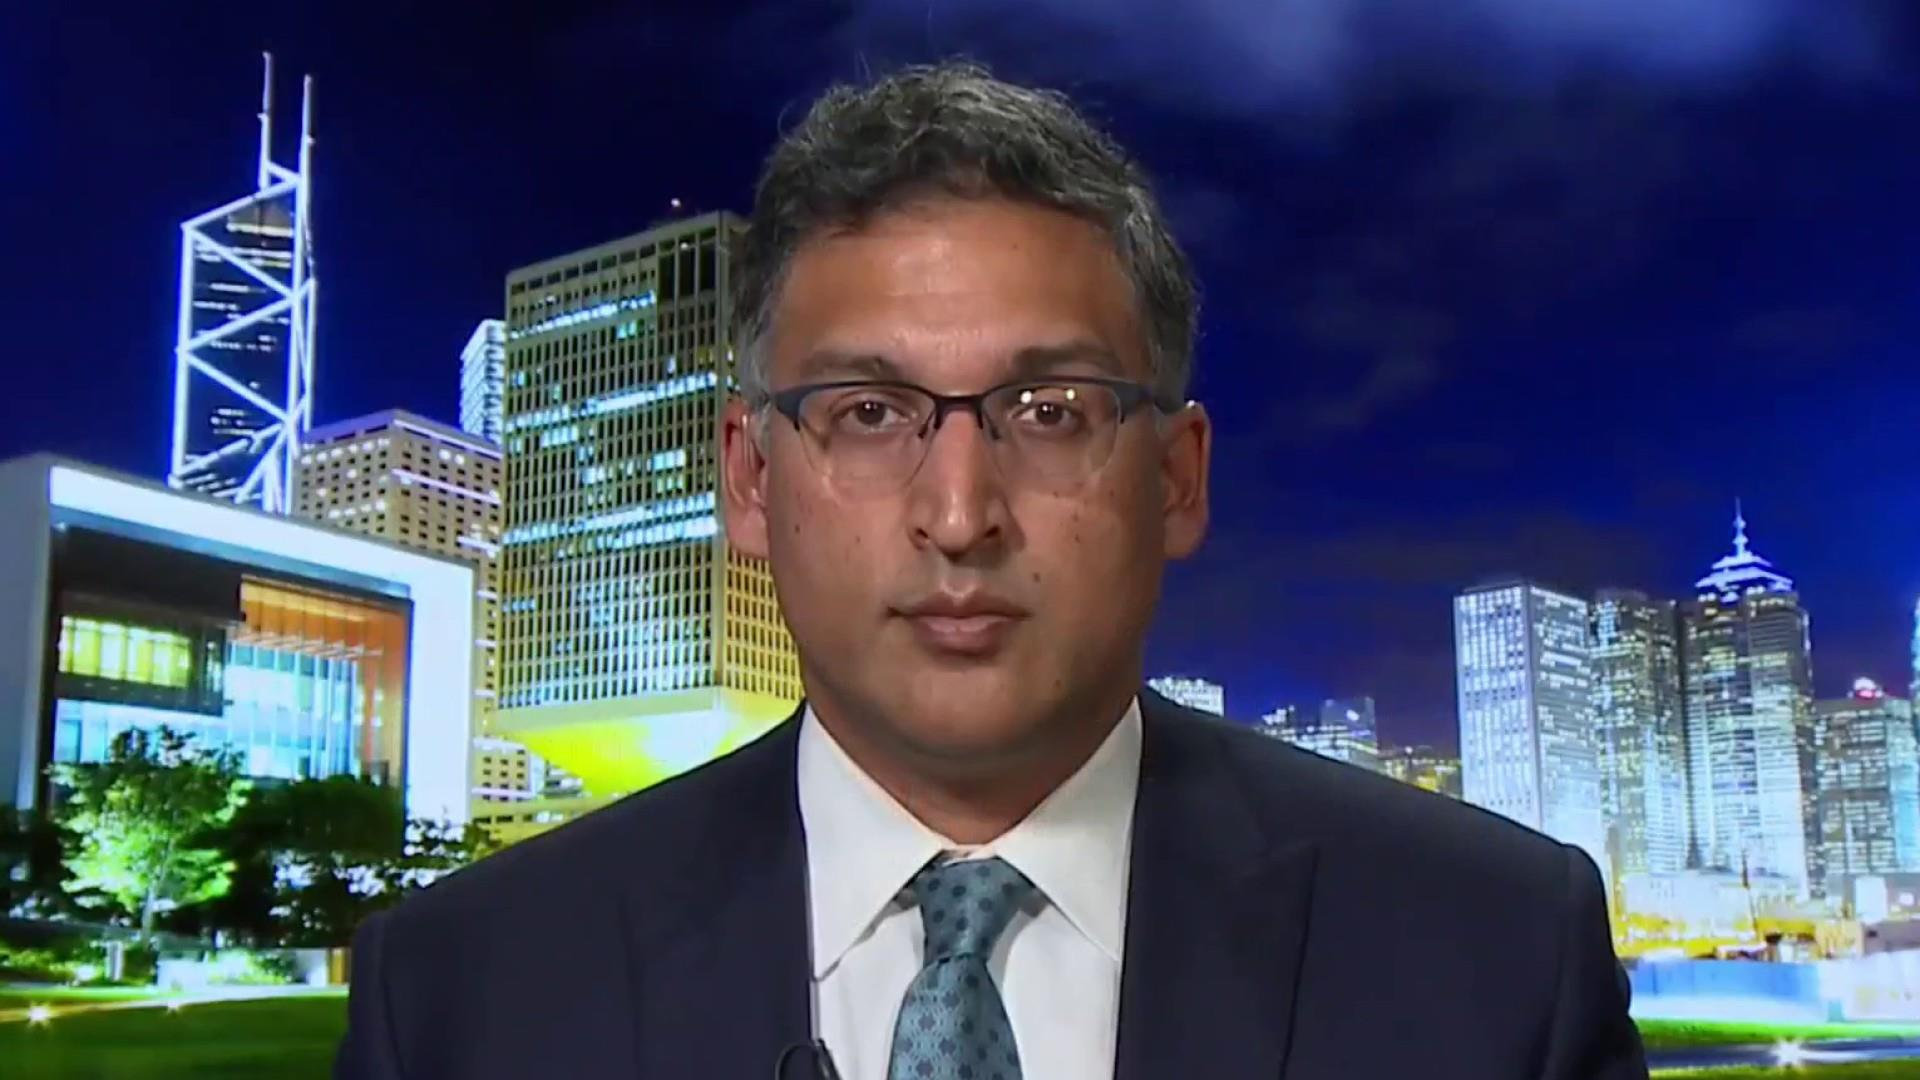 Neal Katyal on how to prosecute a sitting president